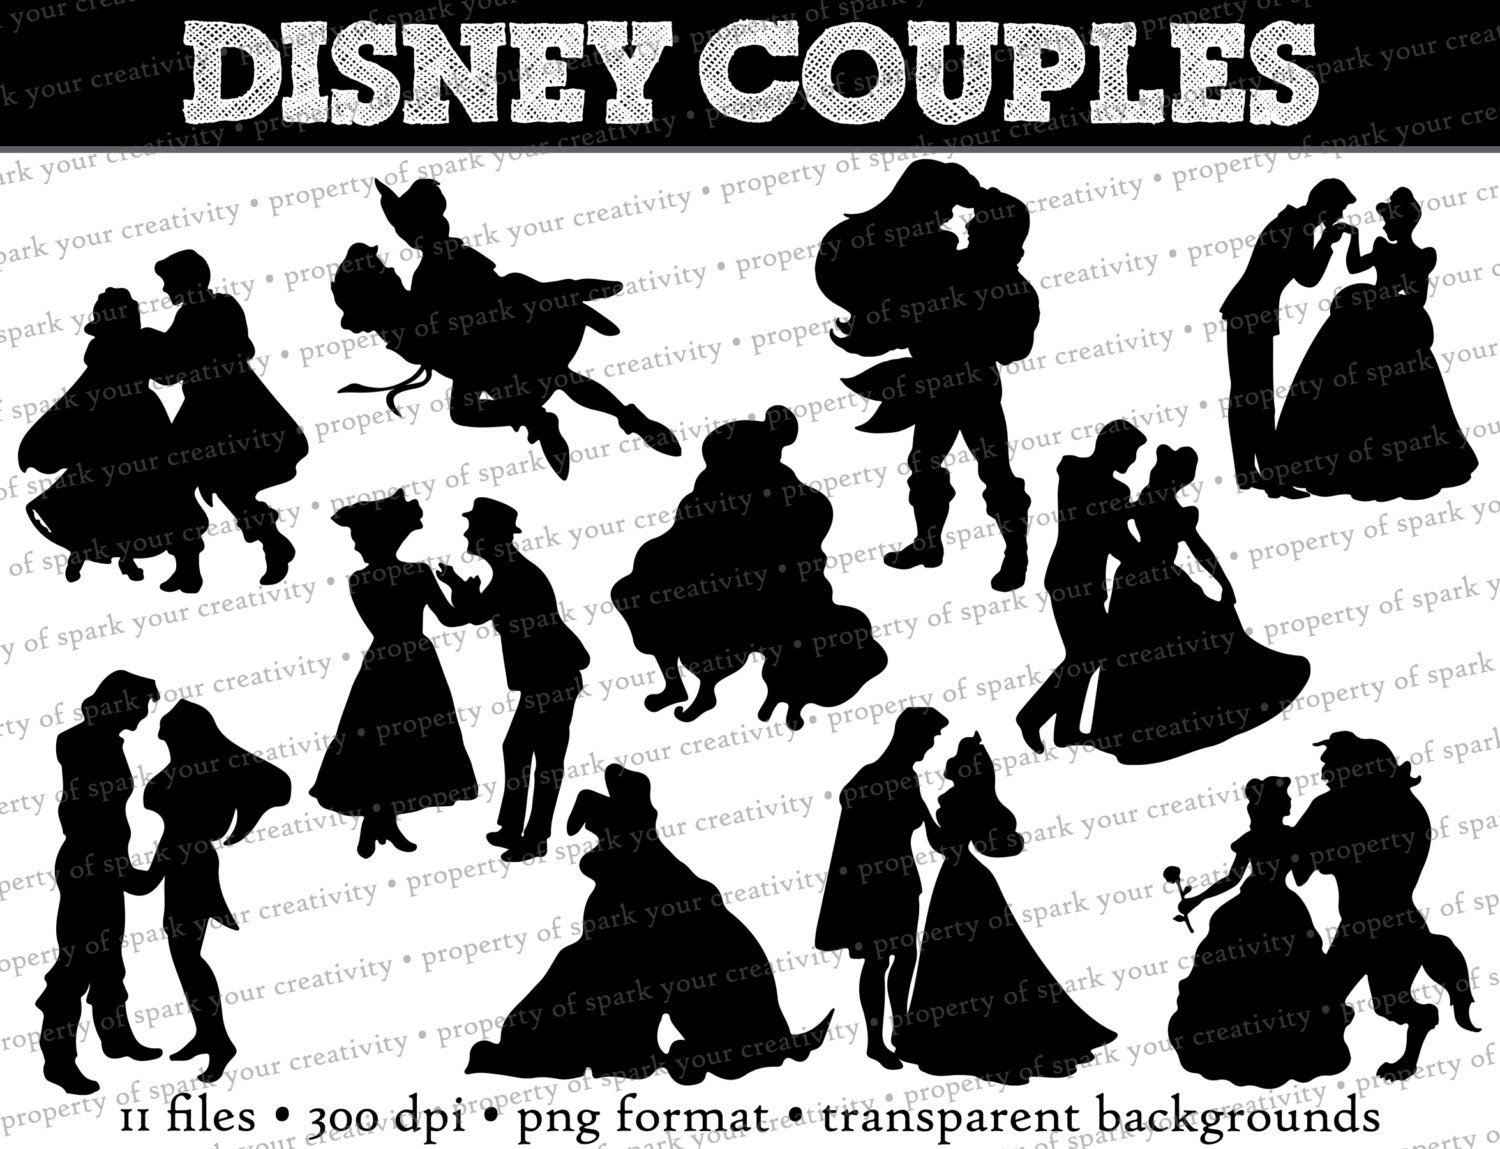 Disney Princess and Prince Silhouettes // Disney Couples